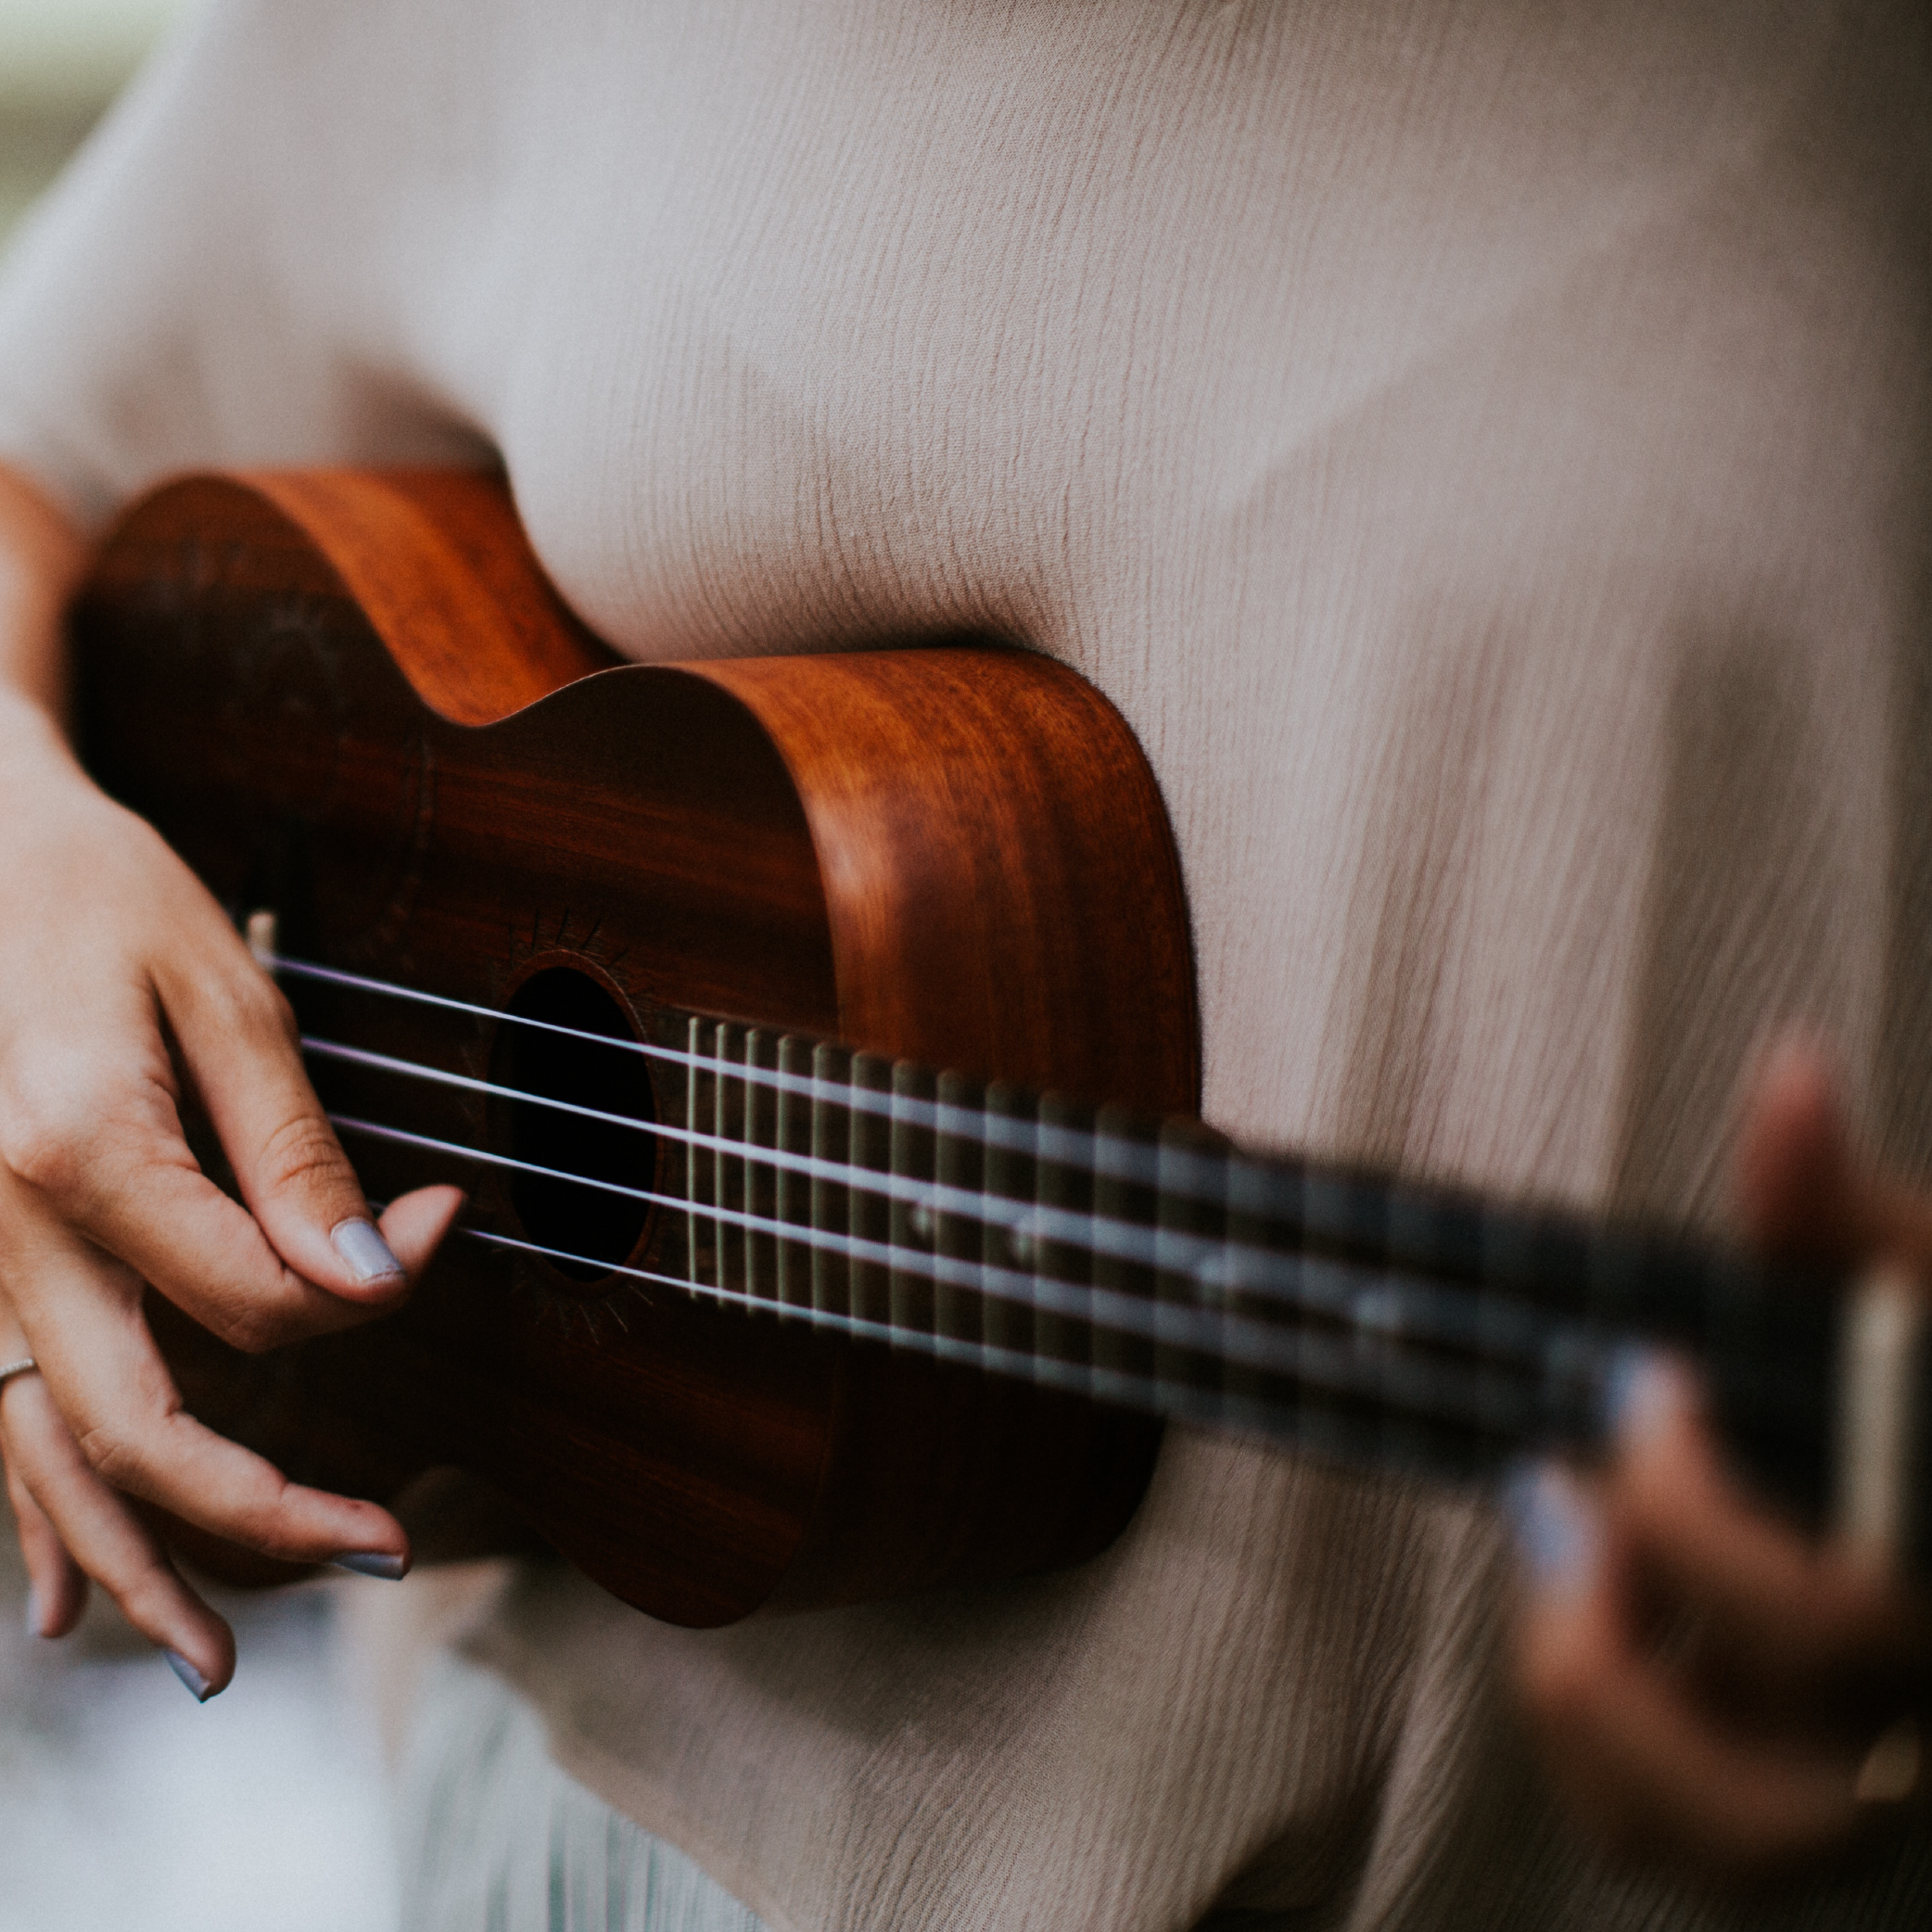 conversations with ukulele players - Move over, guitar - everyone is playing the ukulele! But what is it about this little instrument that has us all hooked?We talk to the people who play to find out why they love the ukulele.